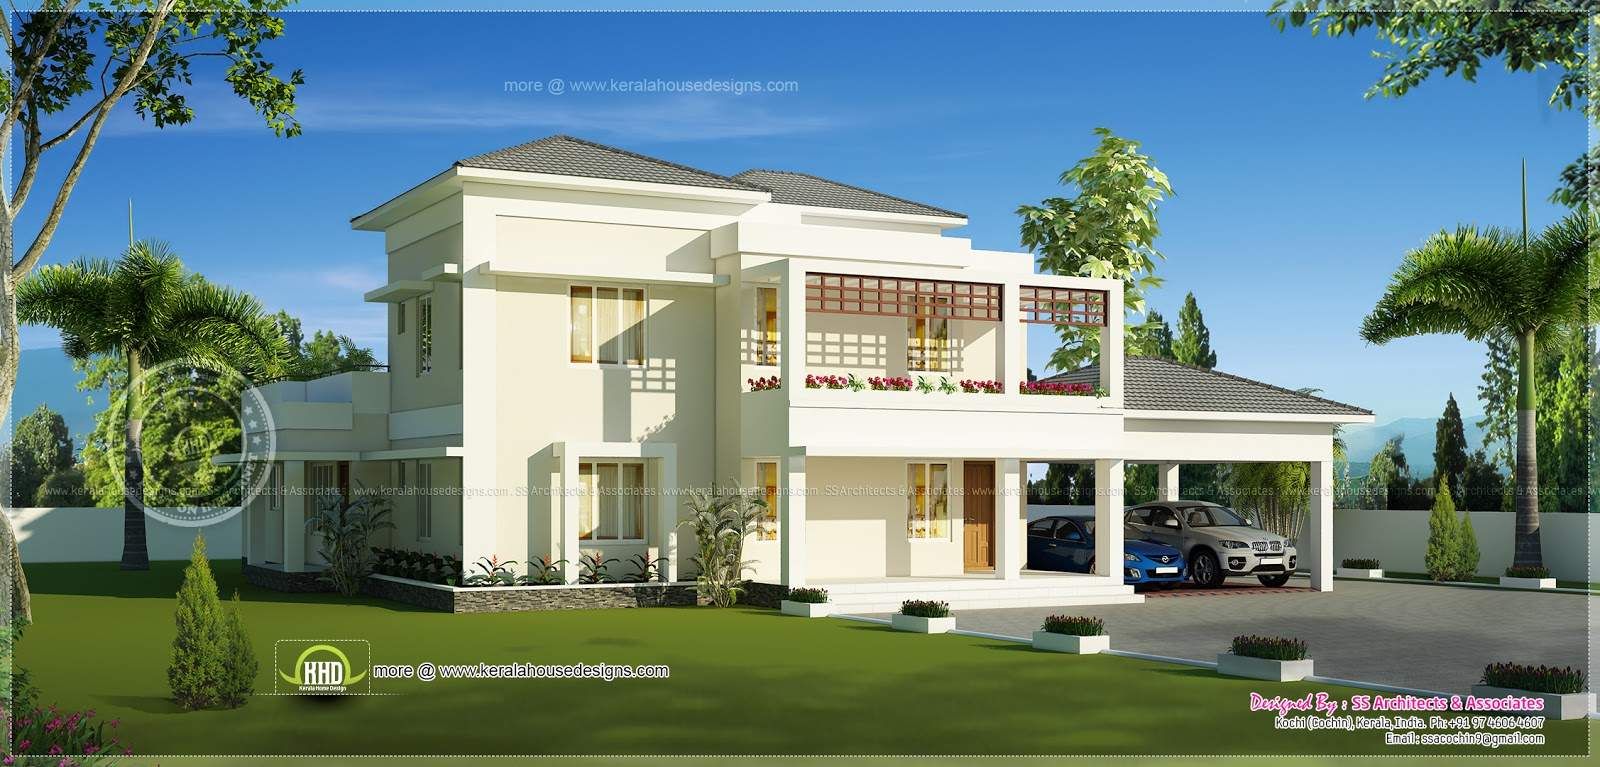 Beautiful Double Storey Modern Villa Exterior Kerala Home Design